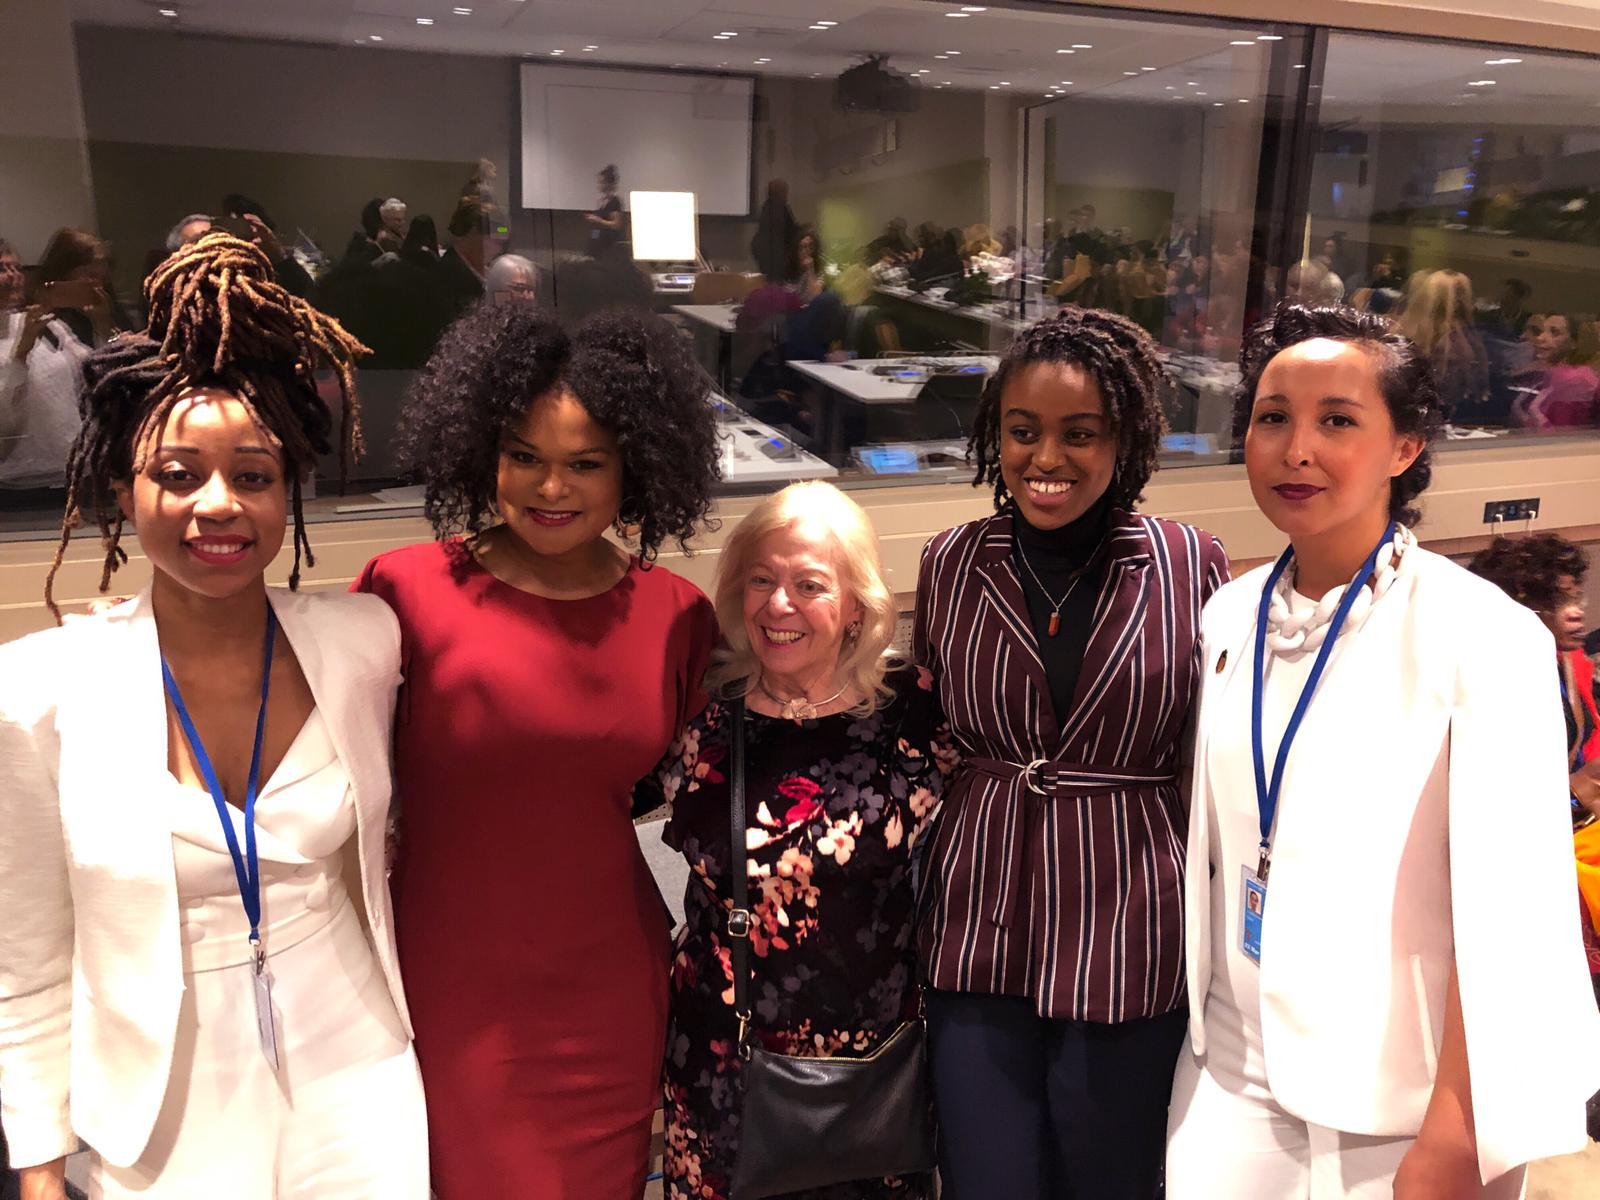 From left to right: Clarice Gargard, Raquel Willis, Edith Lederer, Camryn Bruno and Hasna El Maroudi.